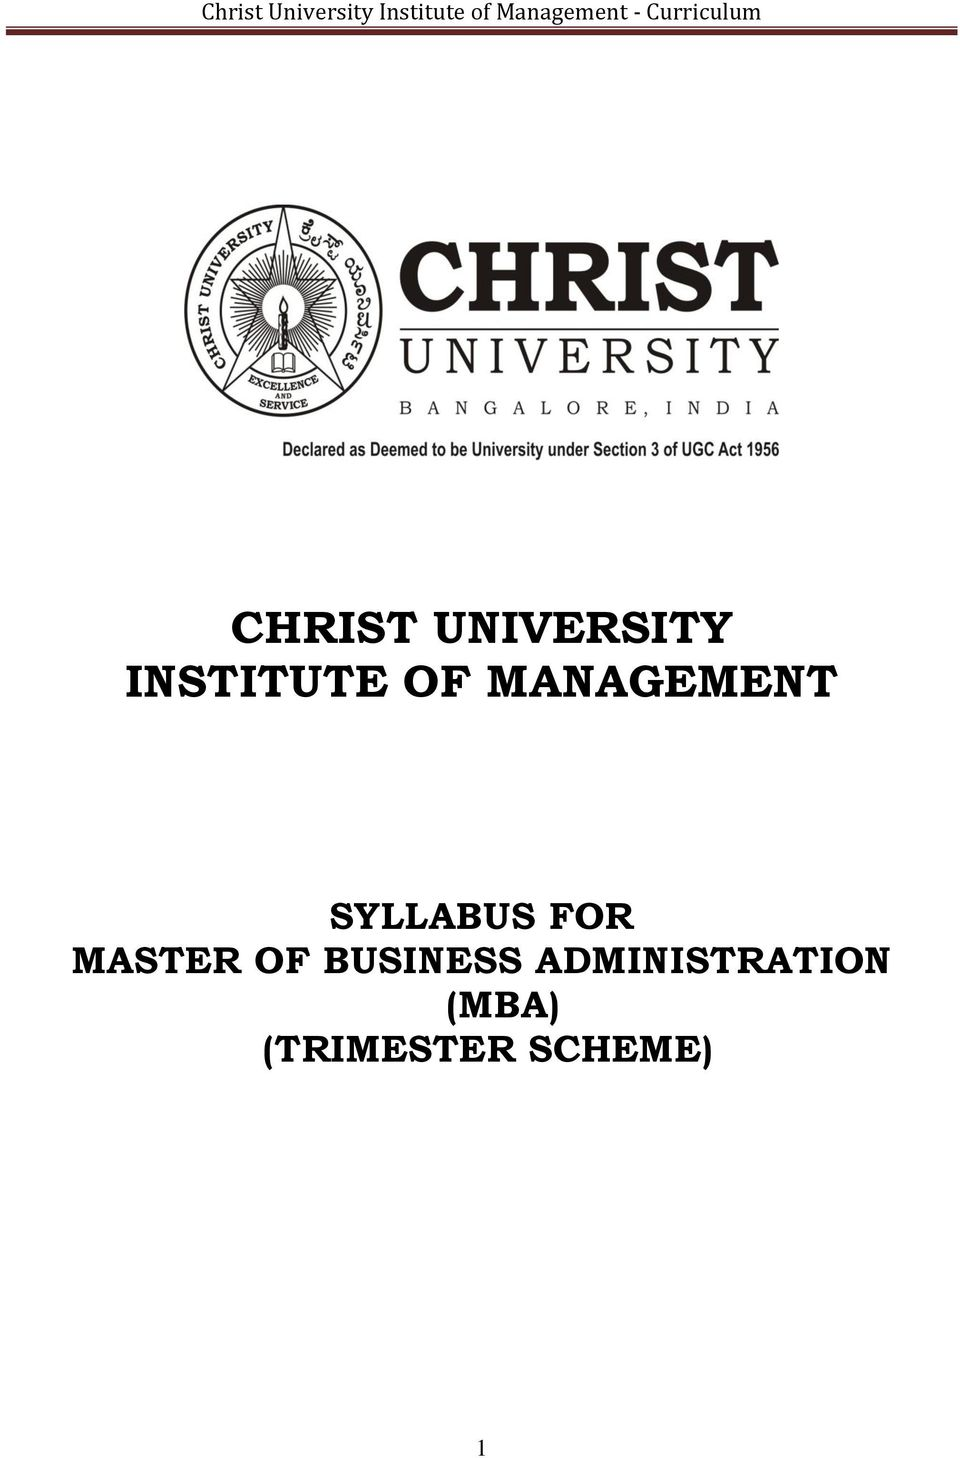 MASTER OF BUSINESS